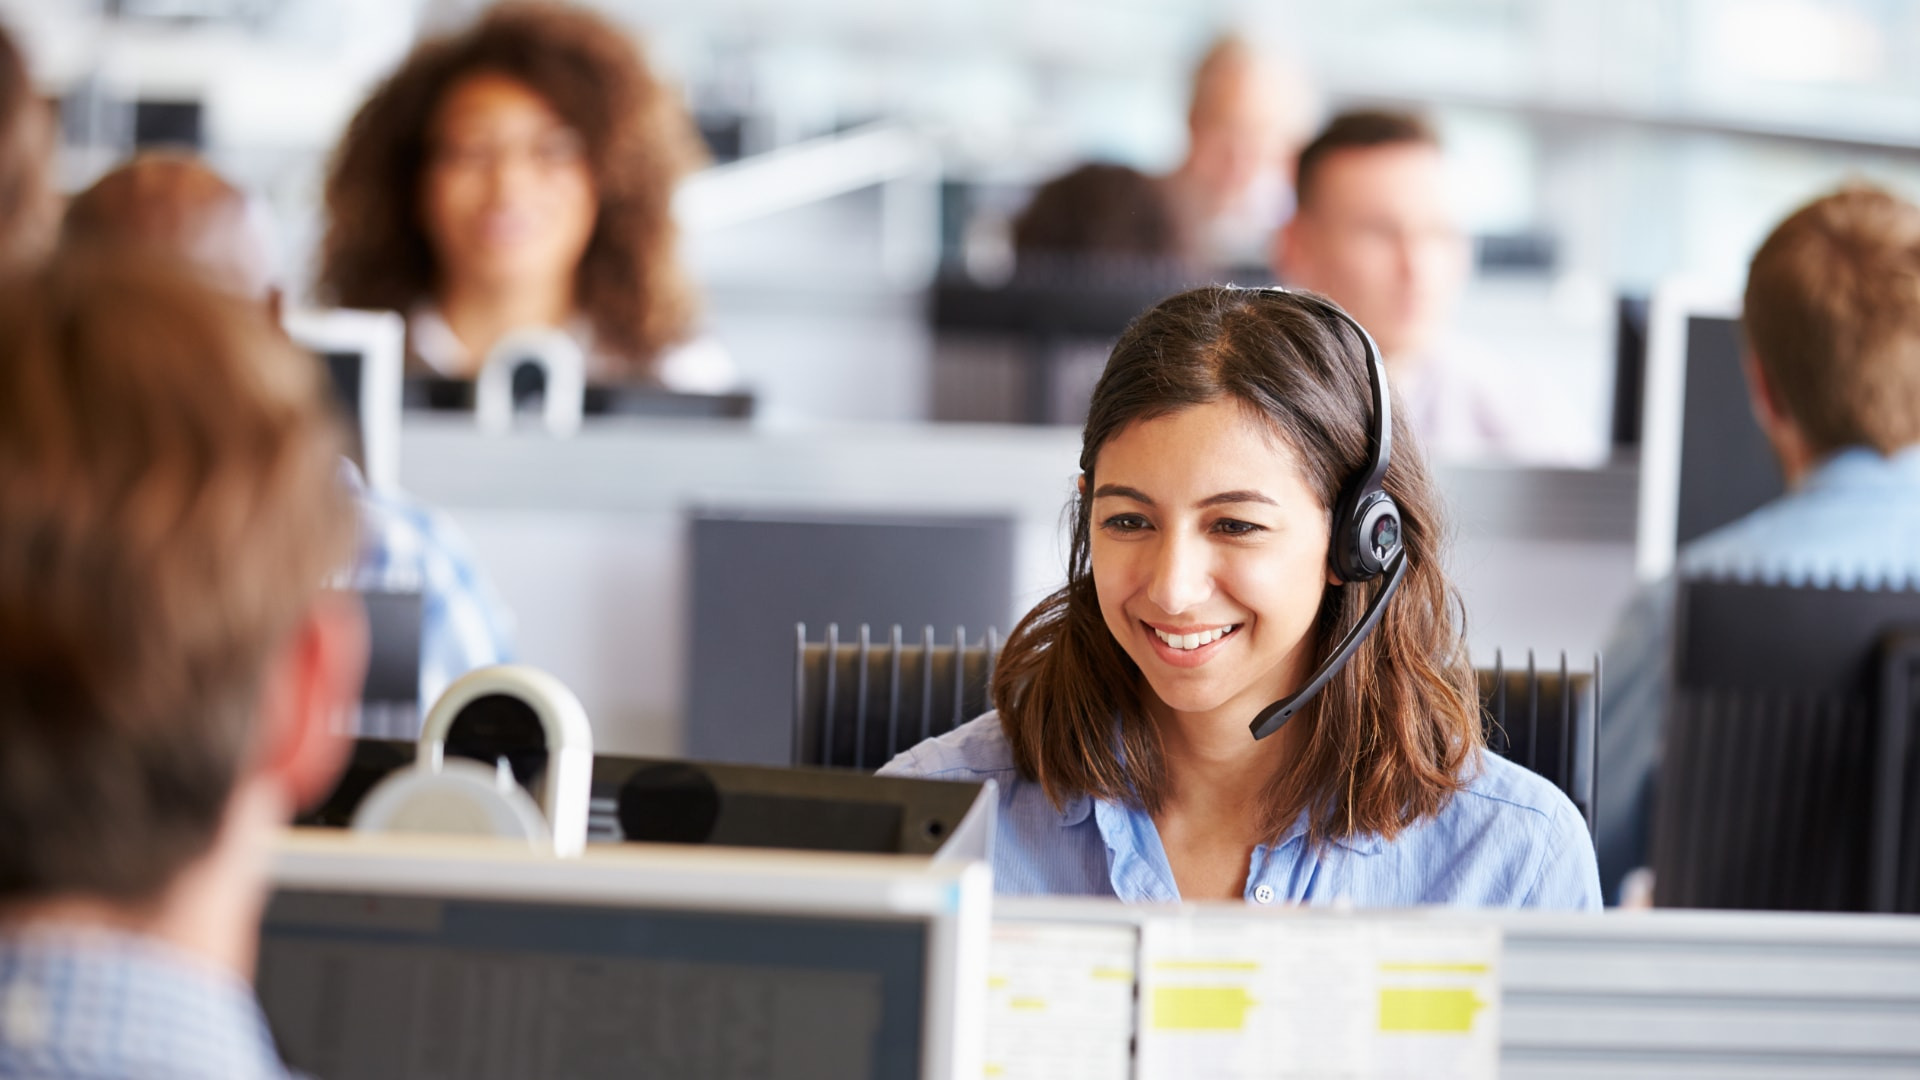 Read more about how you can benefit using our data collection and dialing solutions